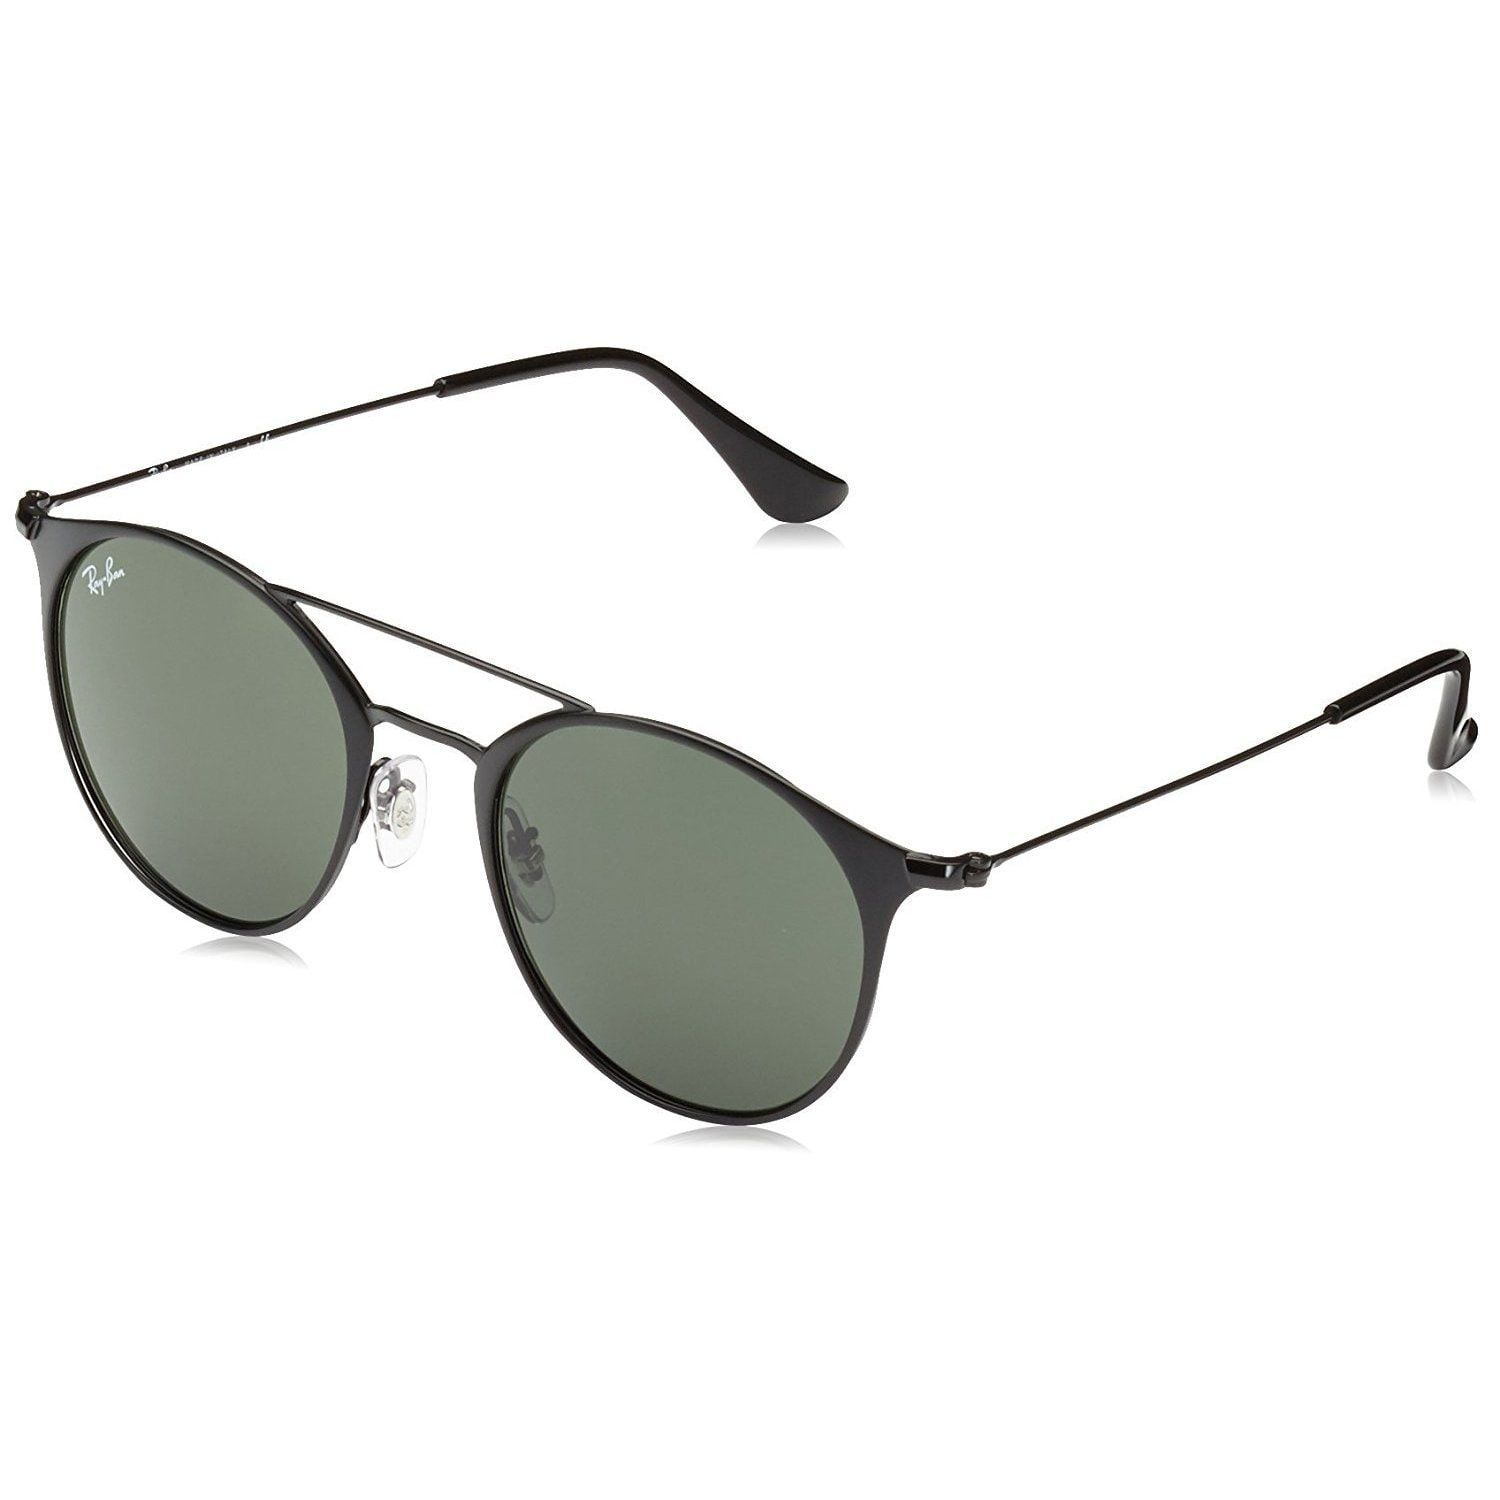 f19122778d Ray-Ban Unisex RB3546 186 Frame Green Classic G-15 52 mm Lens Sunglasses